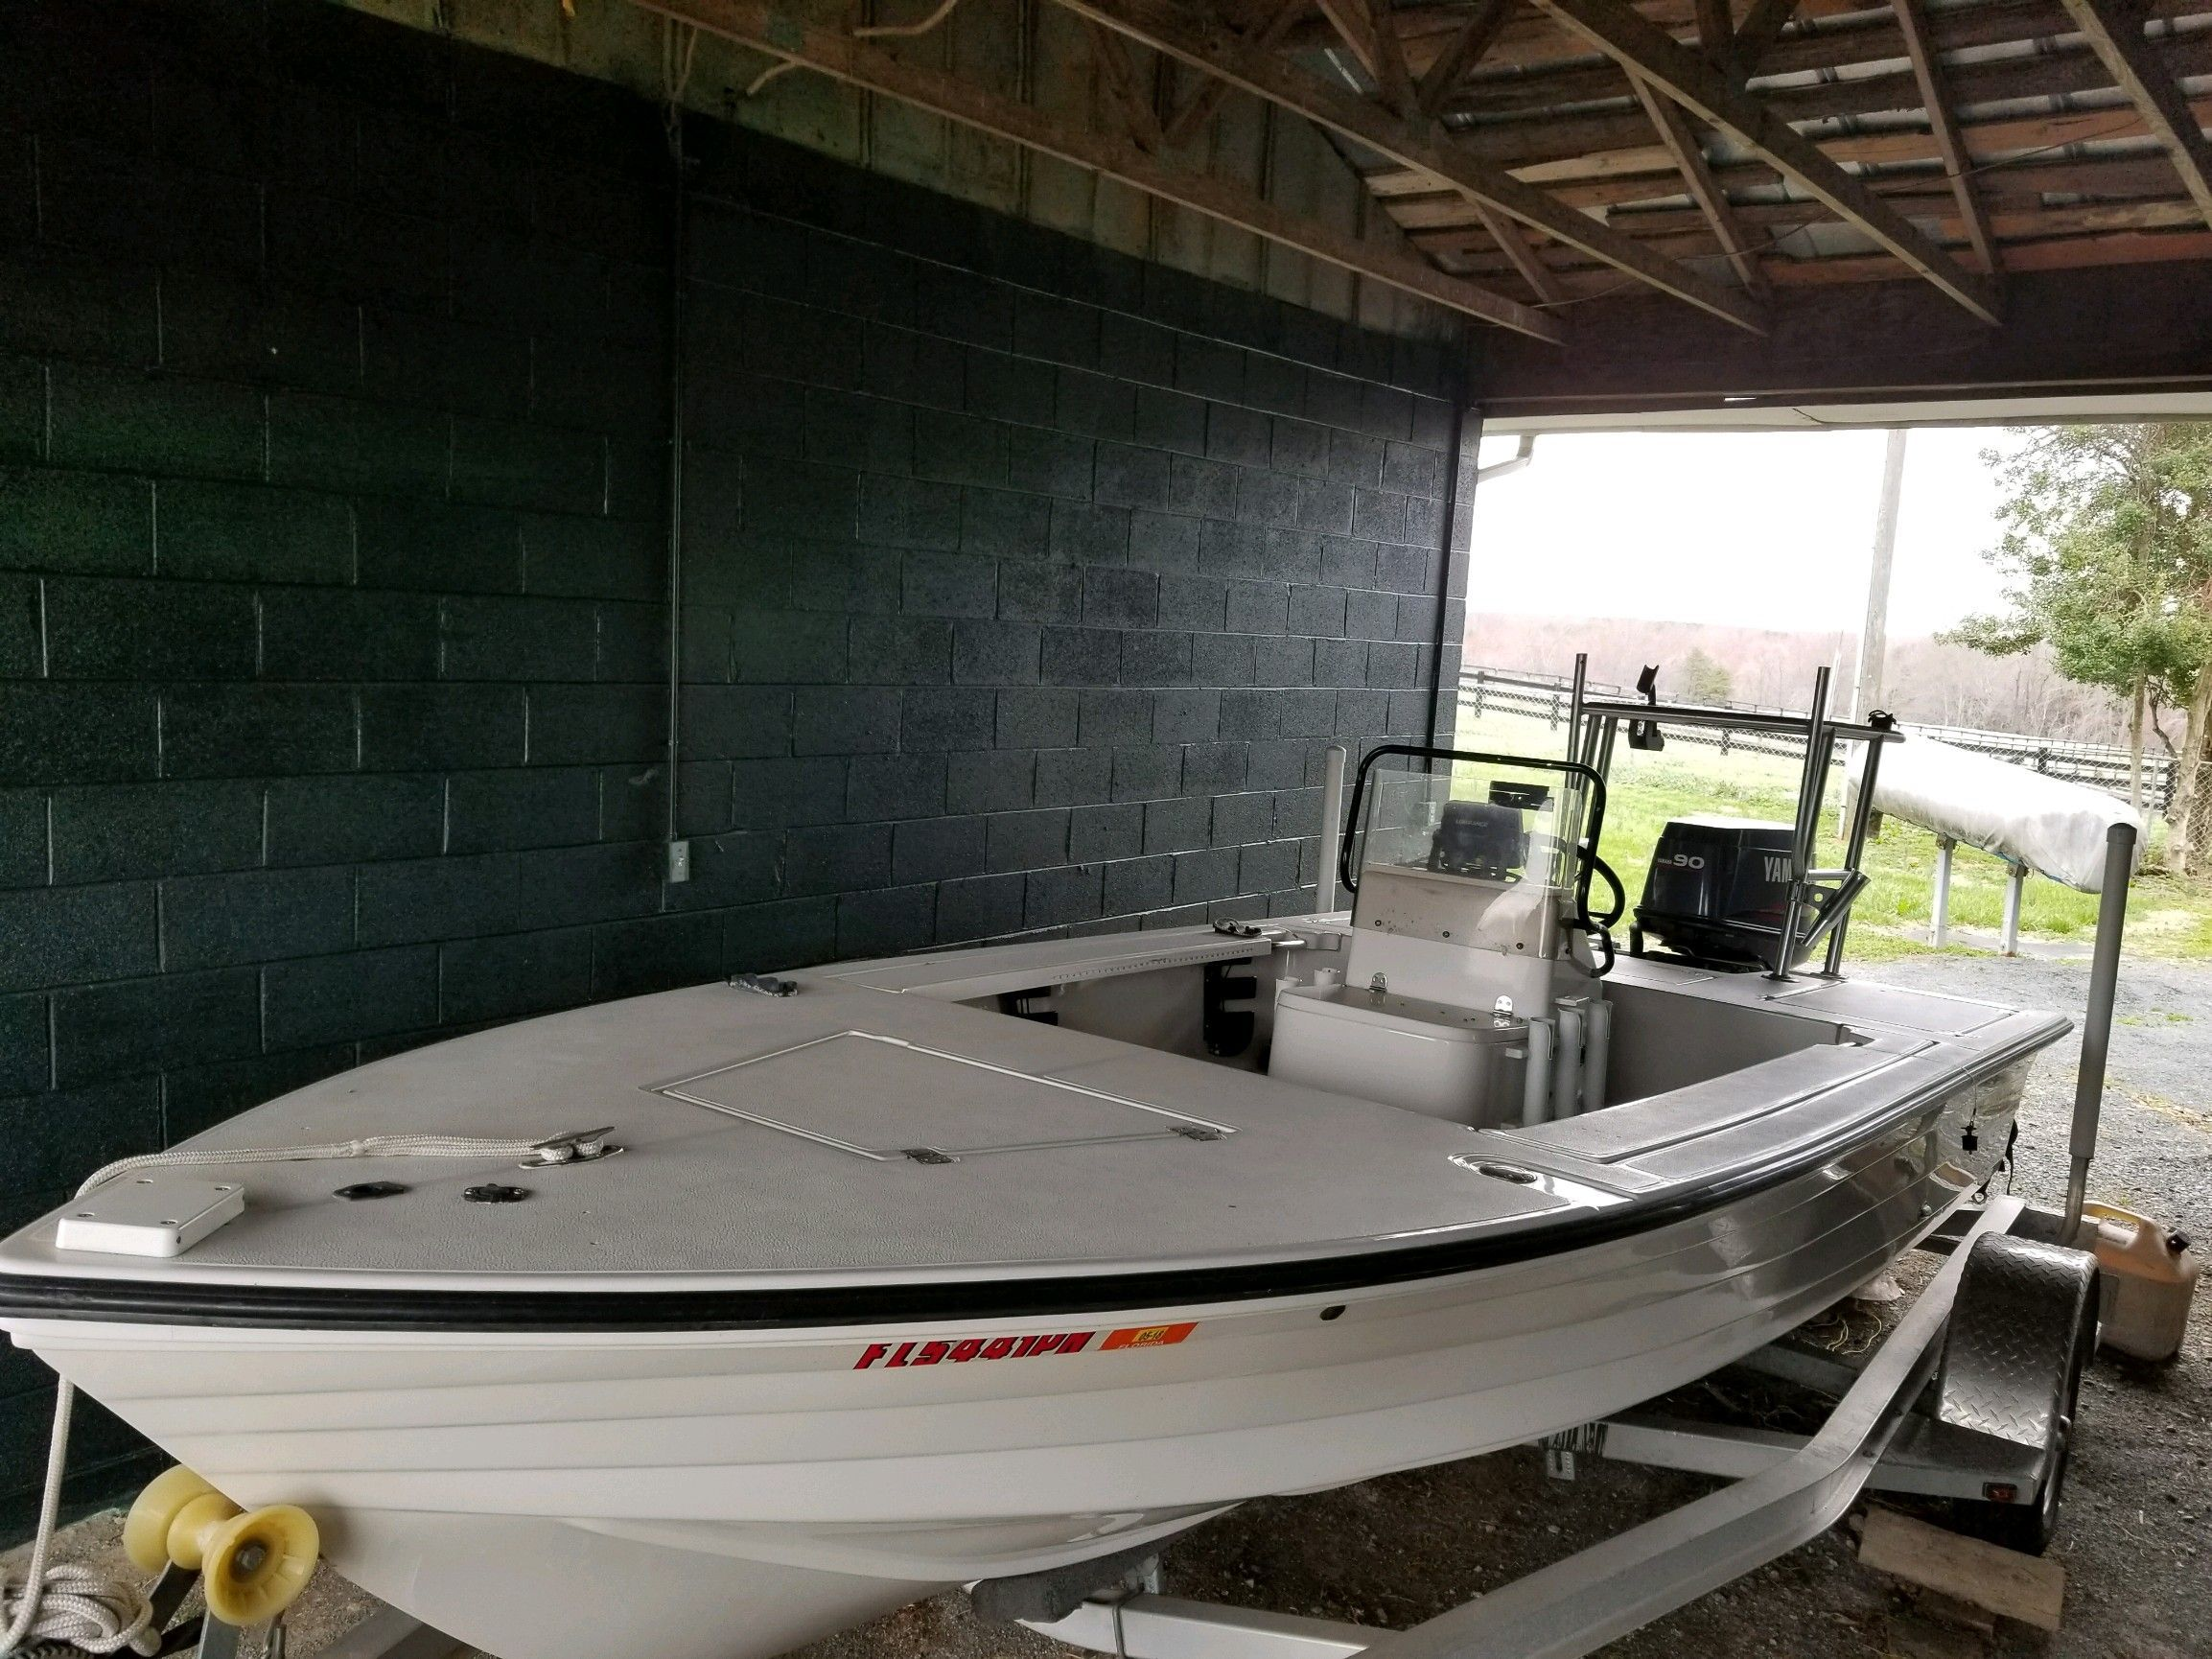 New To The Market Is This Beautiful Well Kept 1998 Hewes Bayfisher 16 In Flats Boat Fishing Hewes Means Quality If Tilt Trailer Flats Boat Boats For Sale